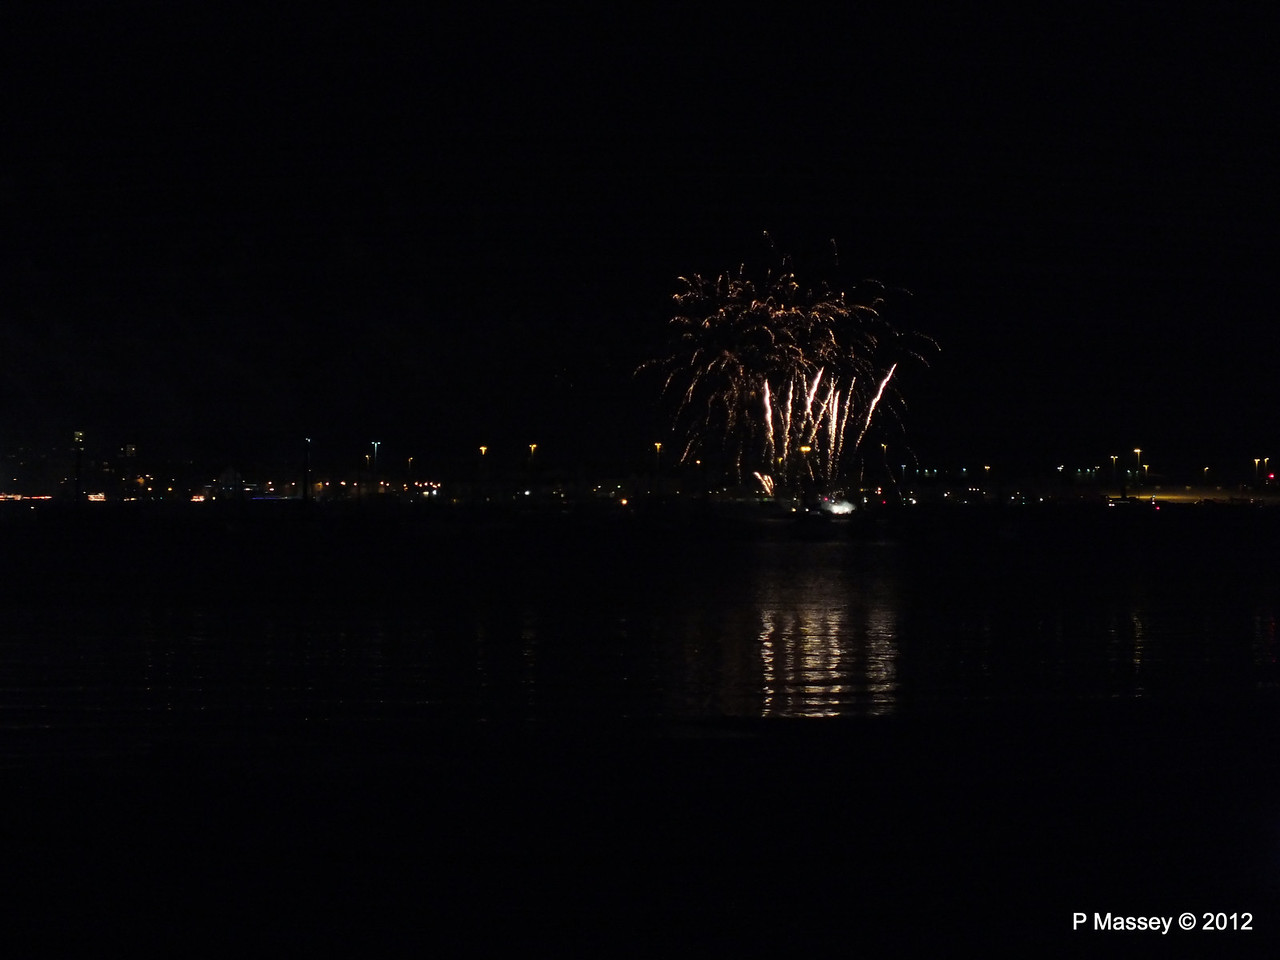 Fireworks off Mayflower Park PDM 03-11-2012 20-48-51